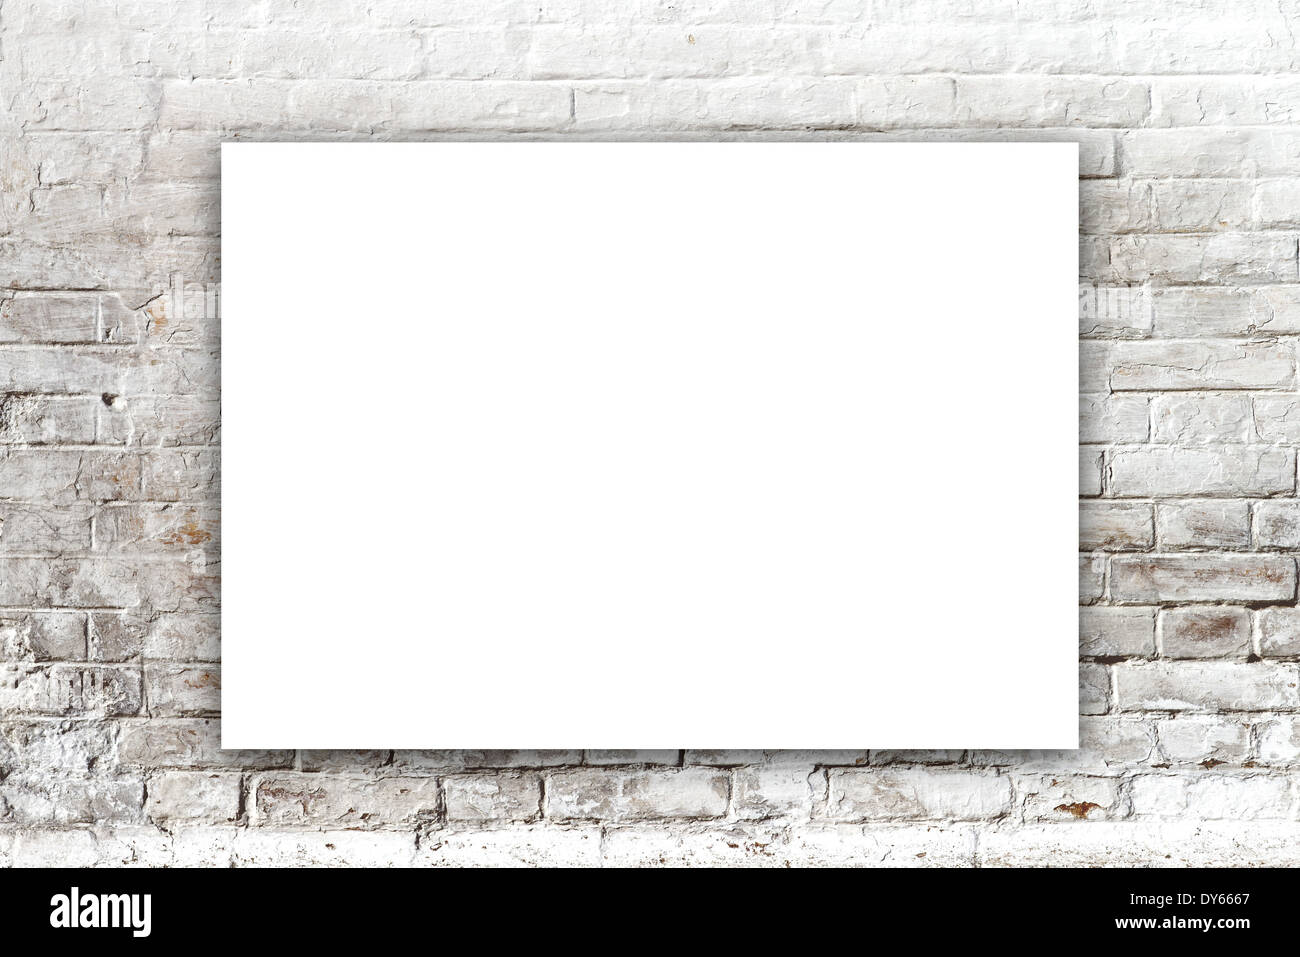 Poster Hanging On The Art Gallery Wall Paper Size Matches International A1 Format With Horizontal Orientation